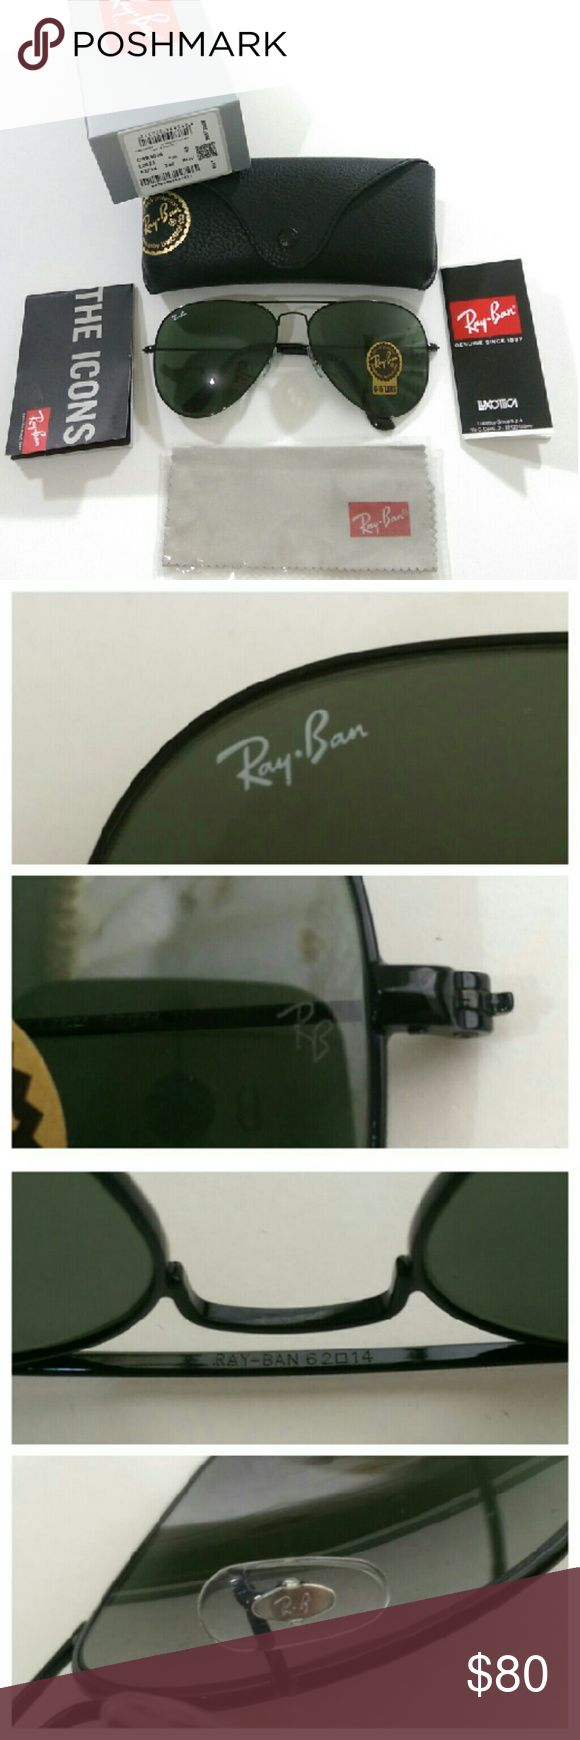 AUTHENTIC Dark green Ray Ban aviator AUTHENTIC  100% firm on price Brand new in box Made in Italy  Serial number L2821 (barcode shown) Size 62mm  Lens color --- Dark green (real glass lens for better vision) Black frame  Comes with box, case, cleaning cloth and booklet Fast shipping (will ship same day if purchased before  1pm) with 2-3 days priority mail  Trusted seller!!! Ray-Ban Accessories Glasses